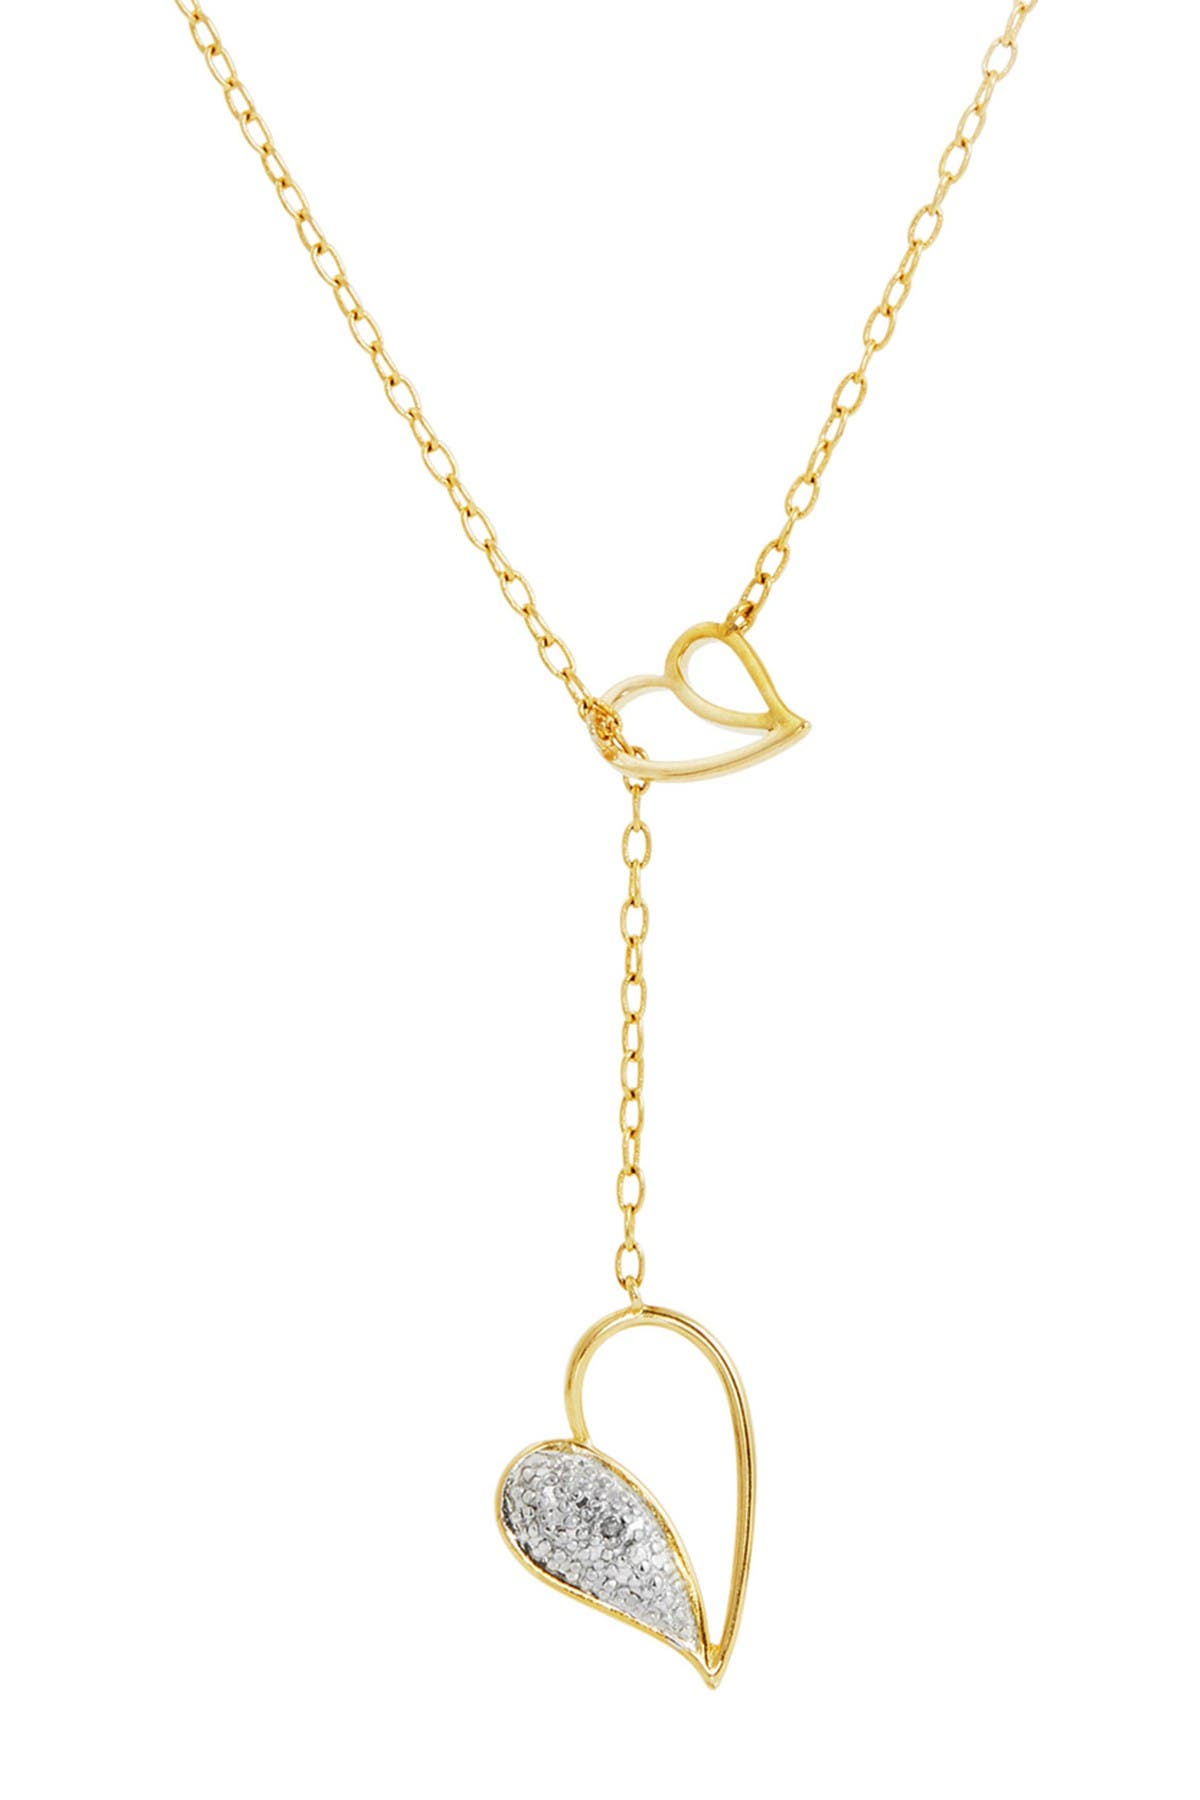 Image of Savvy Cie 14K Gold Plated Sterling Silver Diamond Double Heart Lariat Necklace - 0.01 ctw